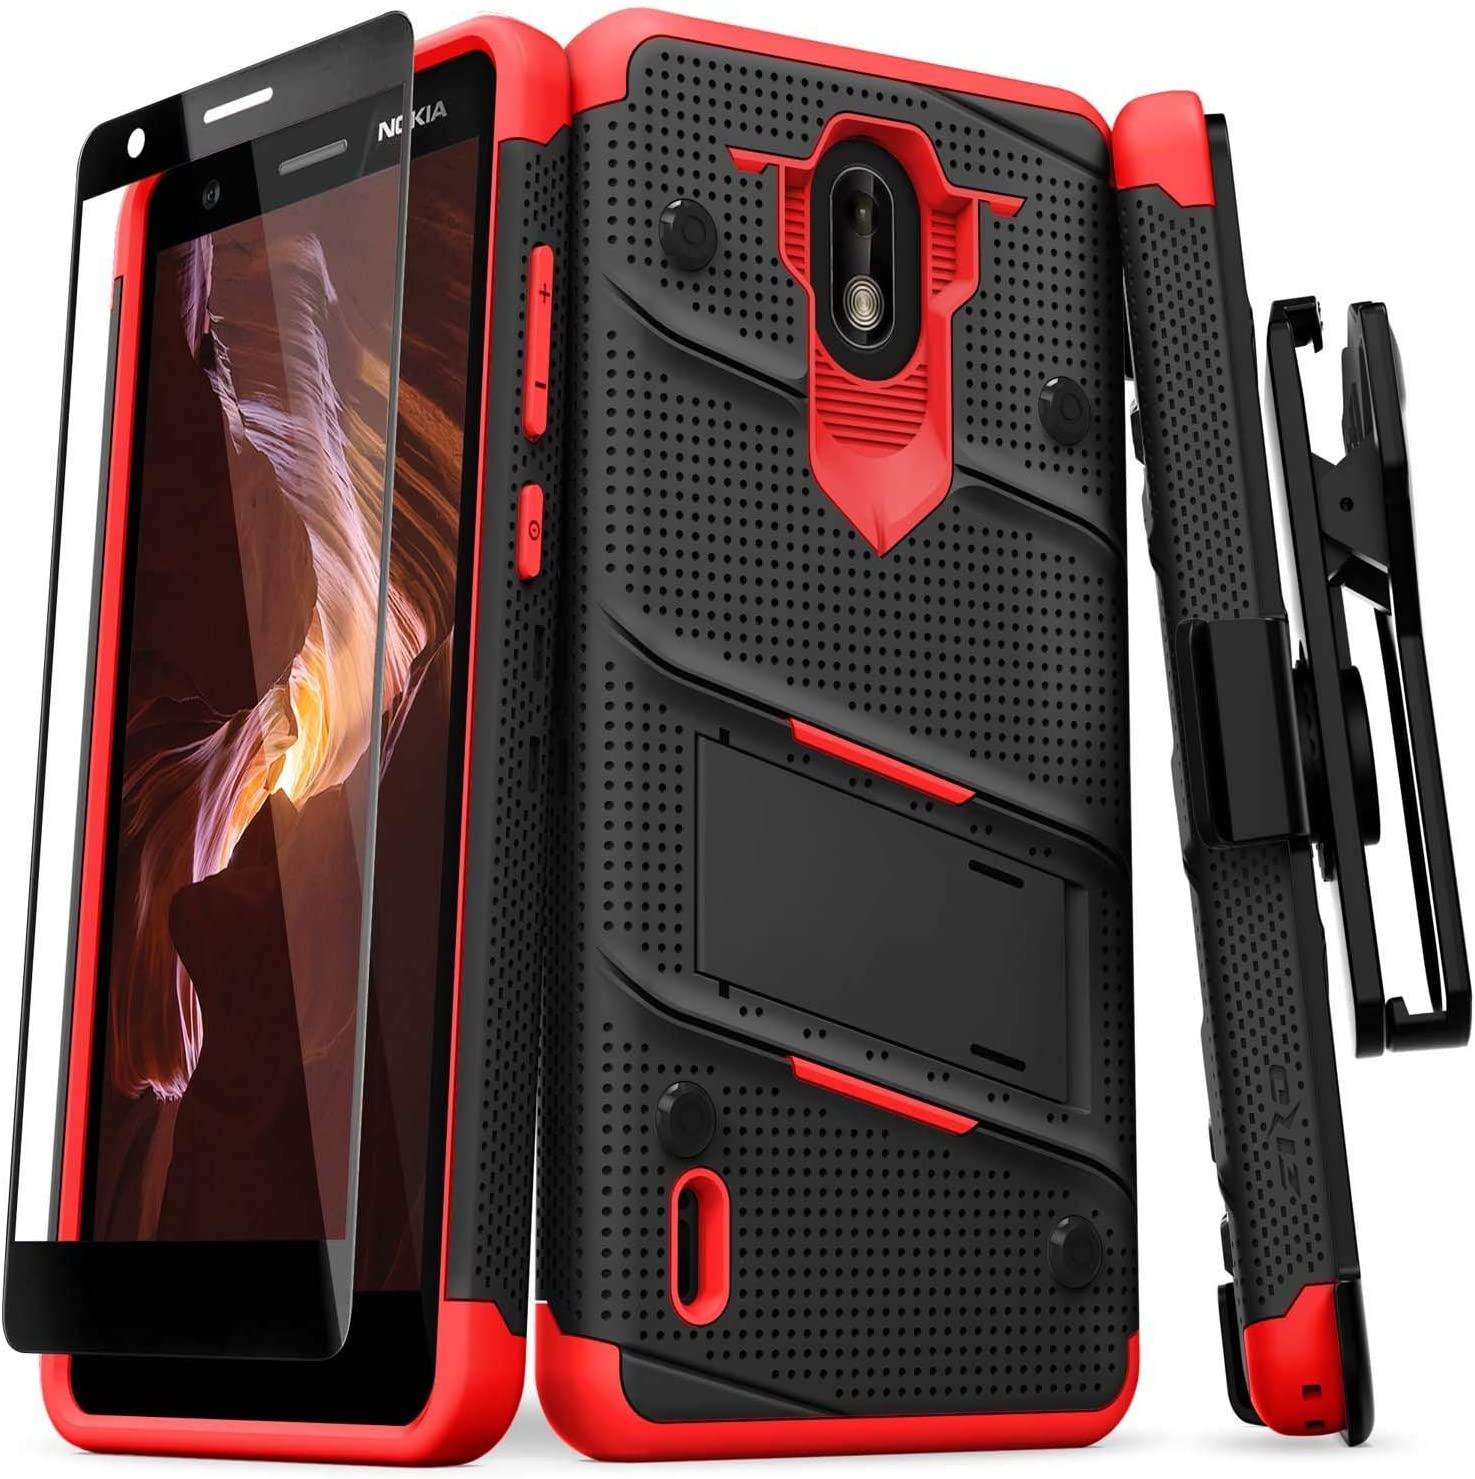 ZIZO Bolt Series Nokia 3.1 C Case Military Grade Drop Tested with Full Glass Screen Protector Holster and Kickstand Black Red